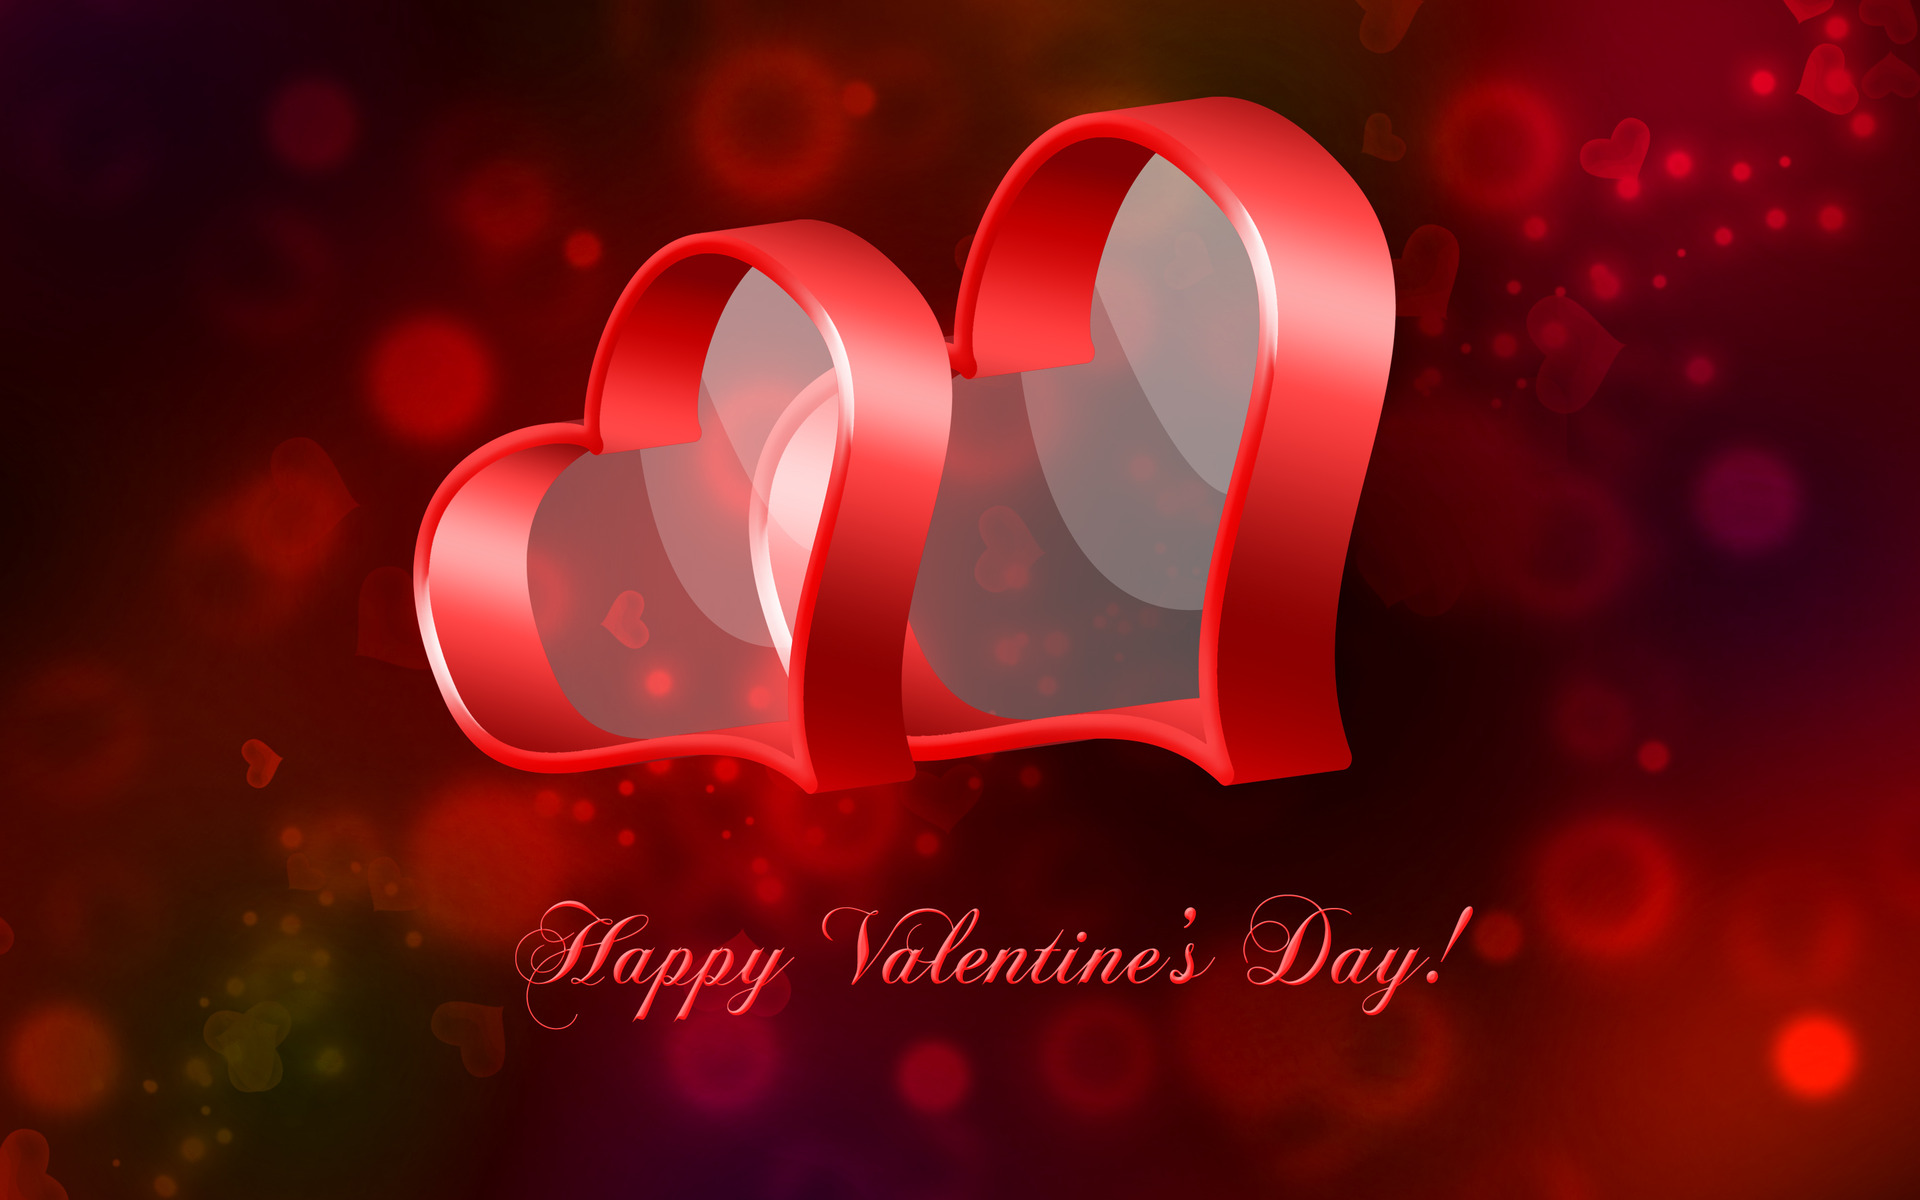 48 ] Free Happy Valentine S Day Wallpaper On WallpaperSafari